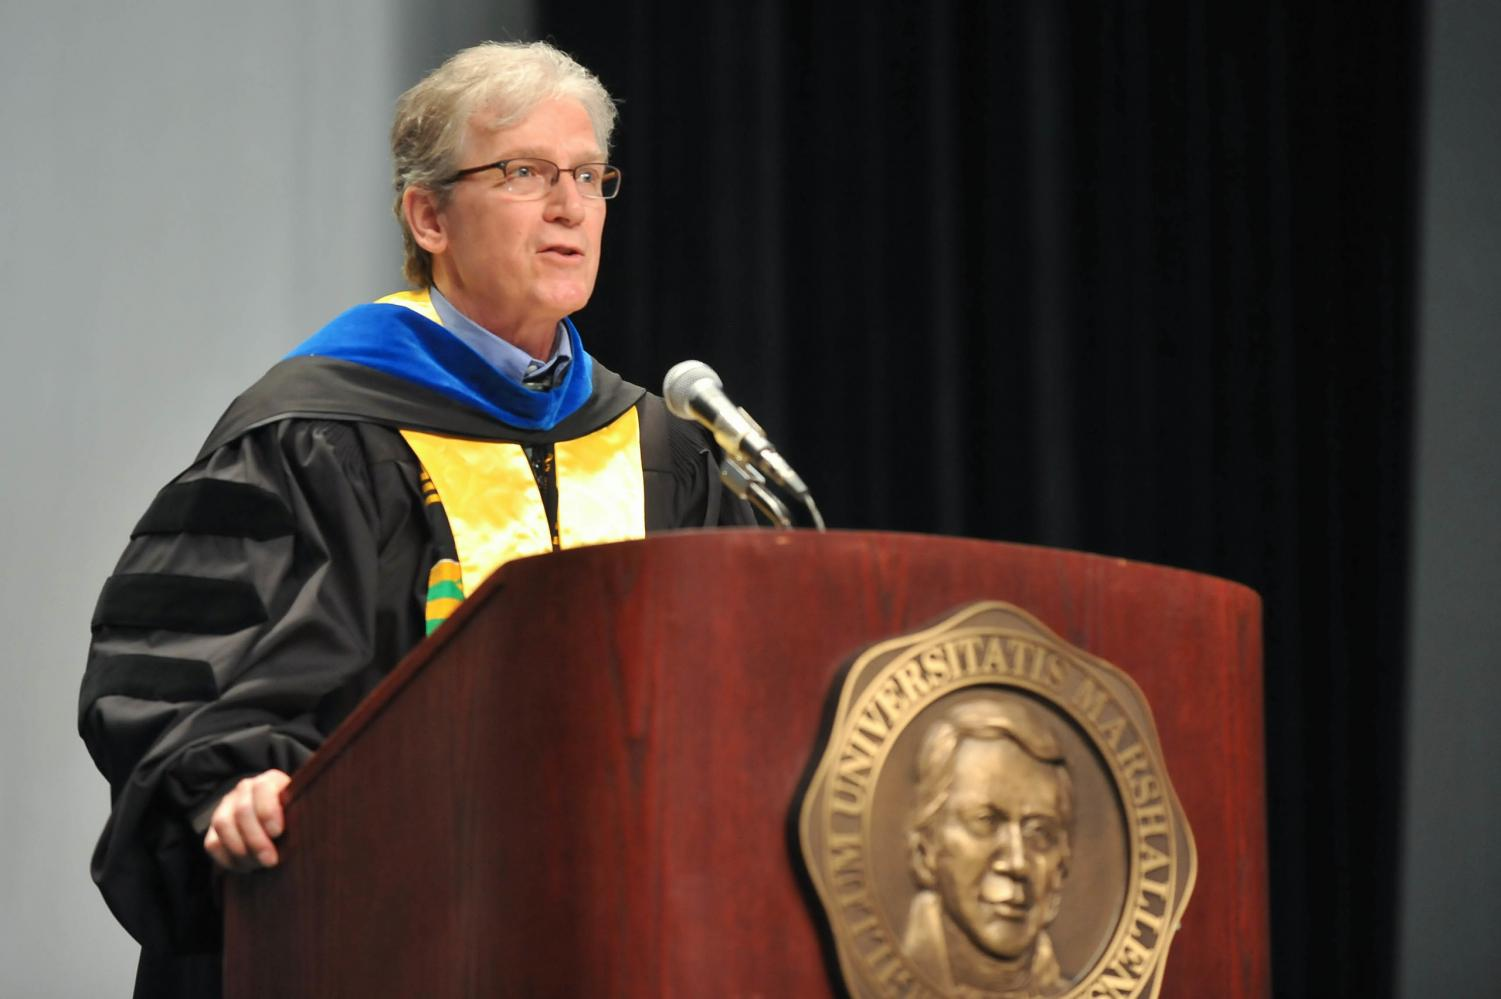 Marshall University Provost Gayle Ormiston announced in September that he was stepping down as provost after 10 years at the University.